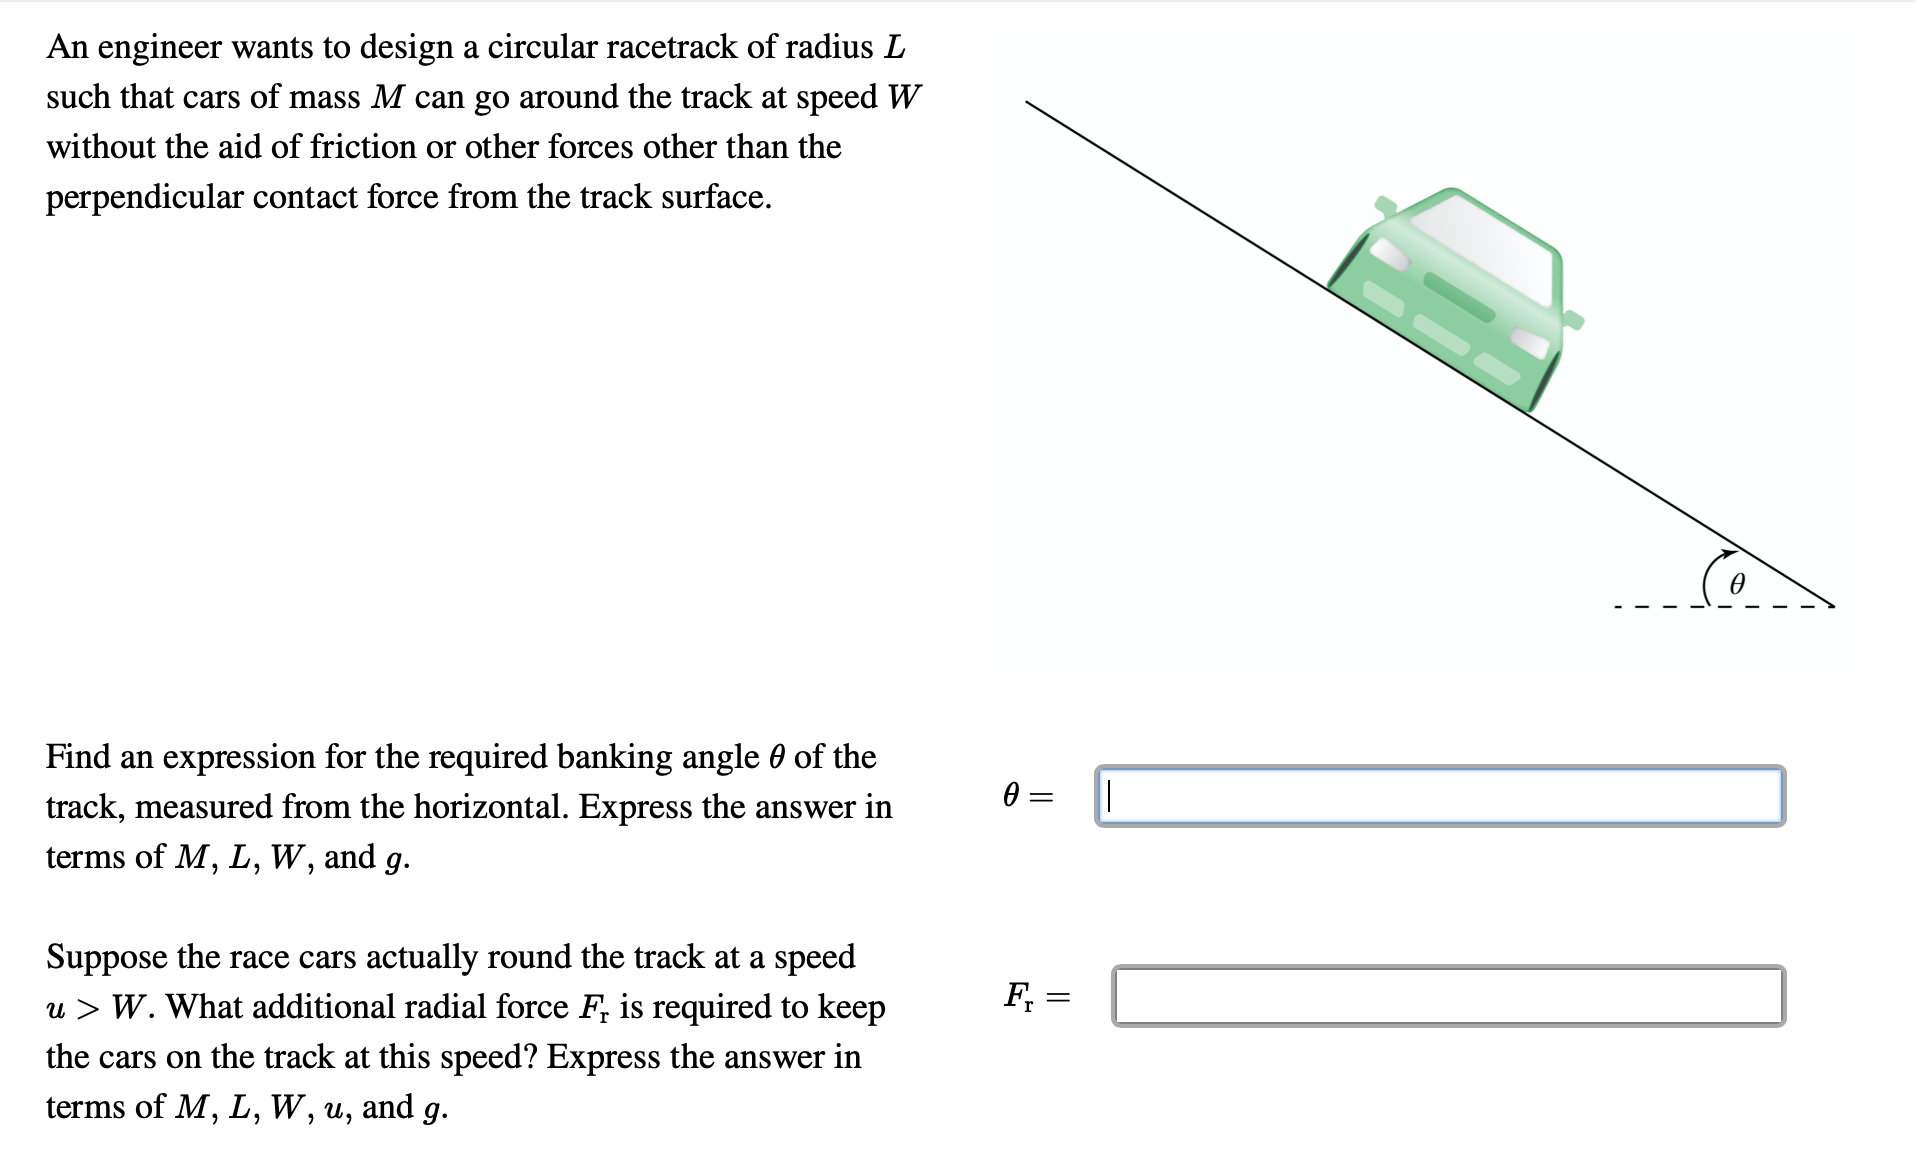 An engineer wants to design a circular racetrack of radius L such that cars of mass M can go around the track at speed W without the aid of friction or other forces other than the perpendicular contact force from the track surface. Find an expression for the required banking angle 0 of the track, measured from the horizontal. Express the answer in terms of M, L, W, and g. Suppose the race cars actually round the track at a speed u > W. What additional radial force F, is required to keep F, = the cars on the track at this speed? Express the answer in terms of M, L, W, u, and g.   